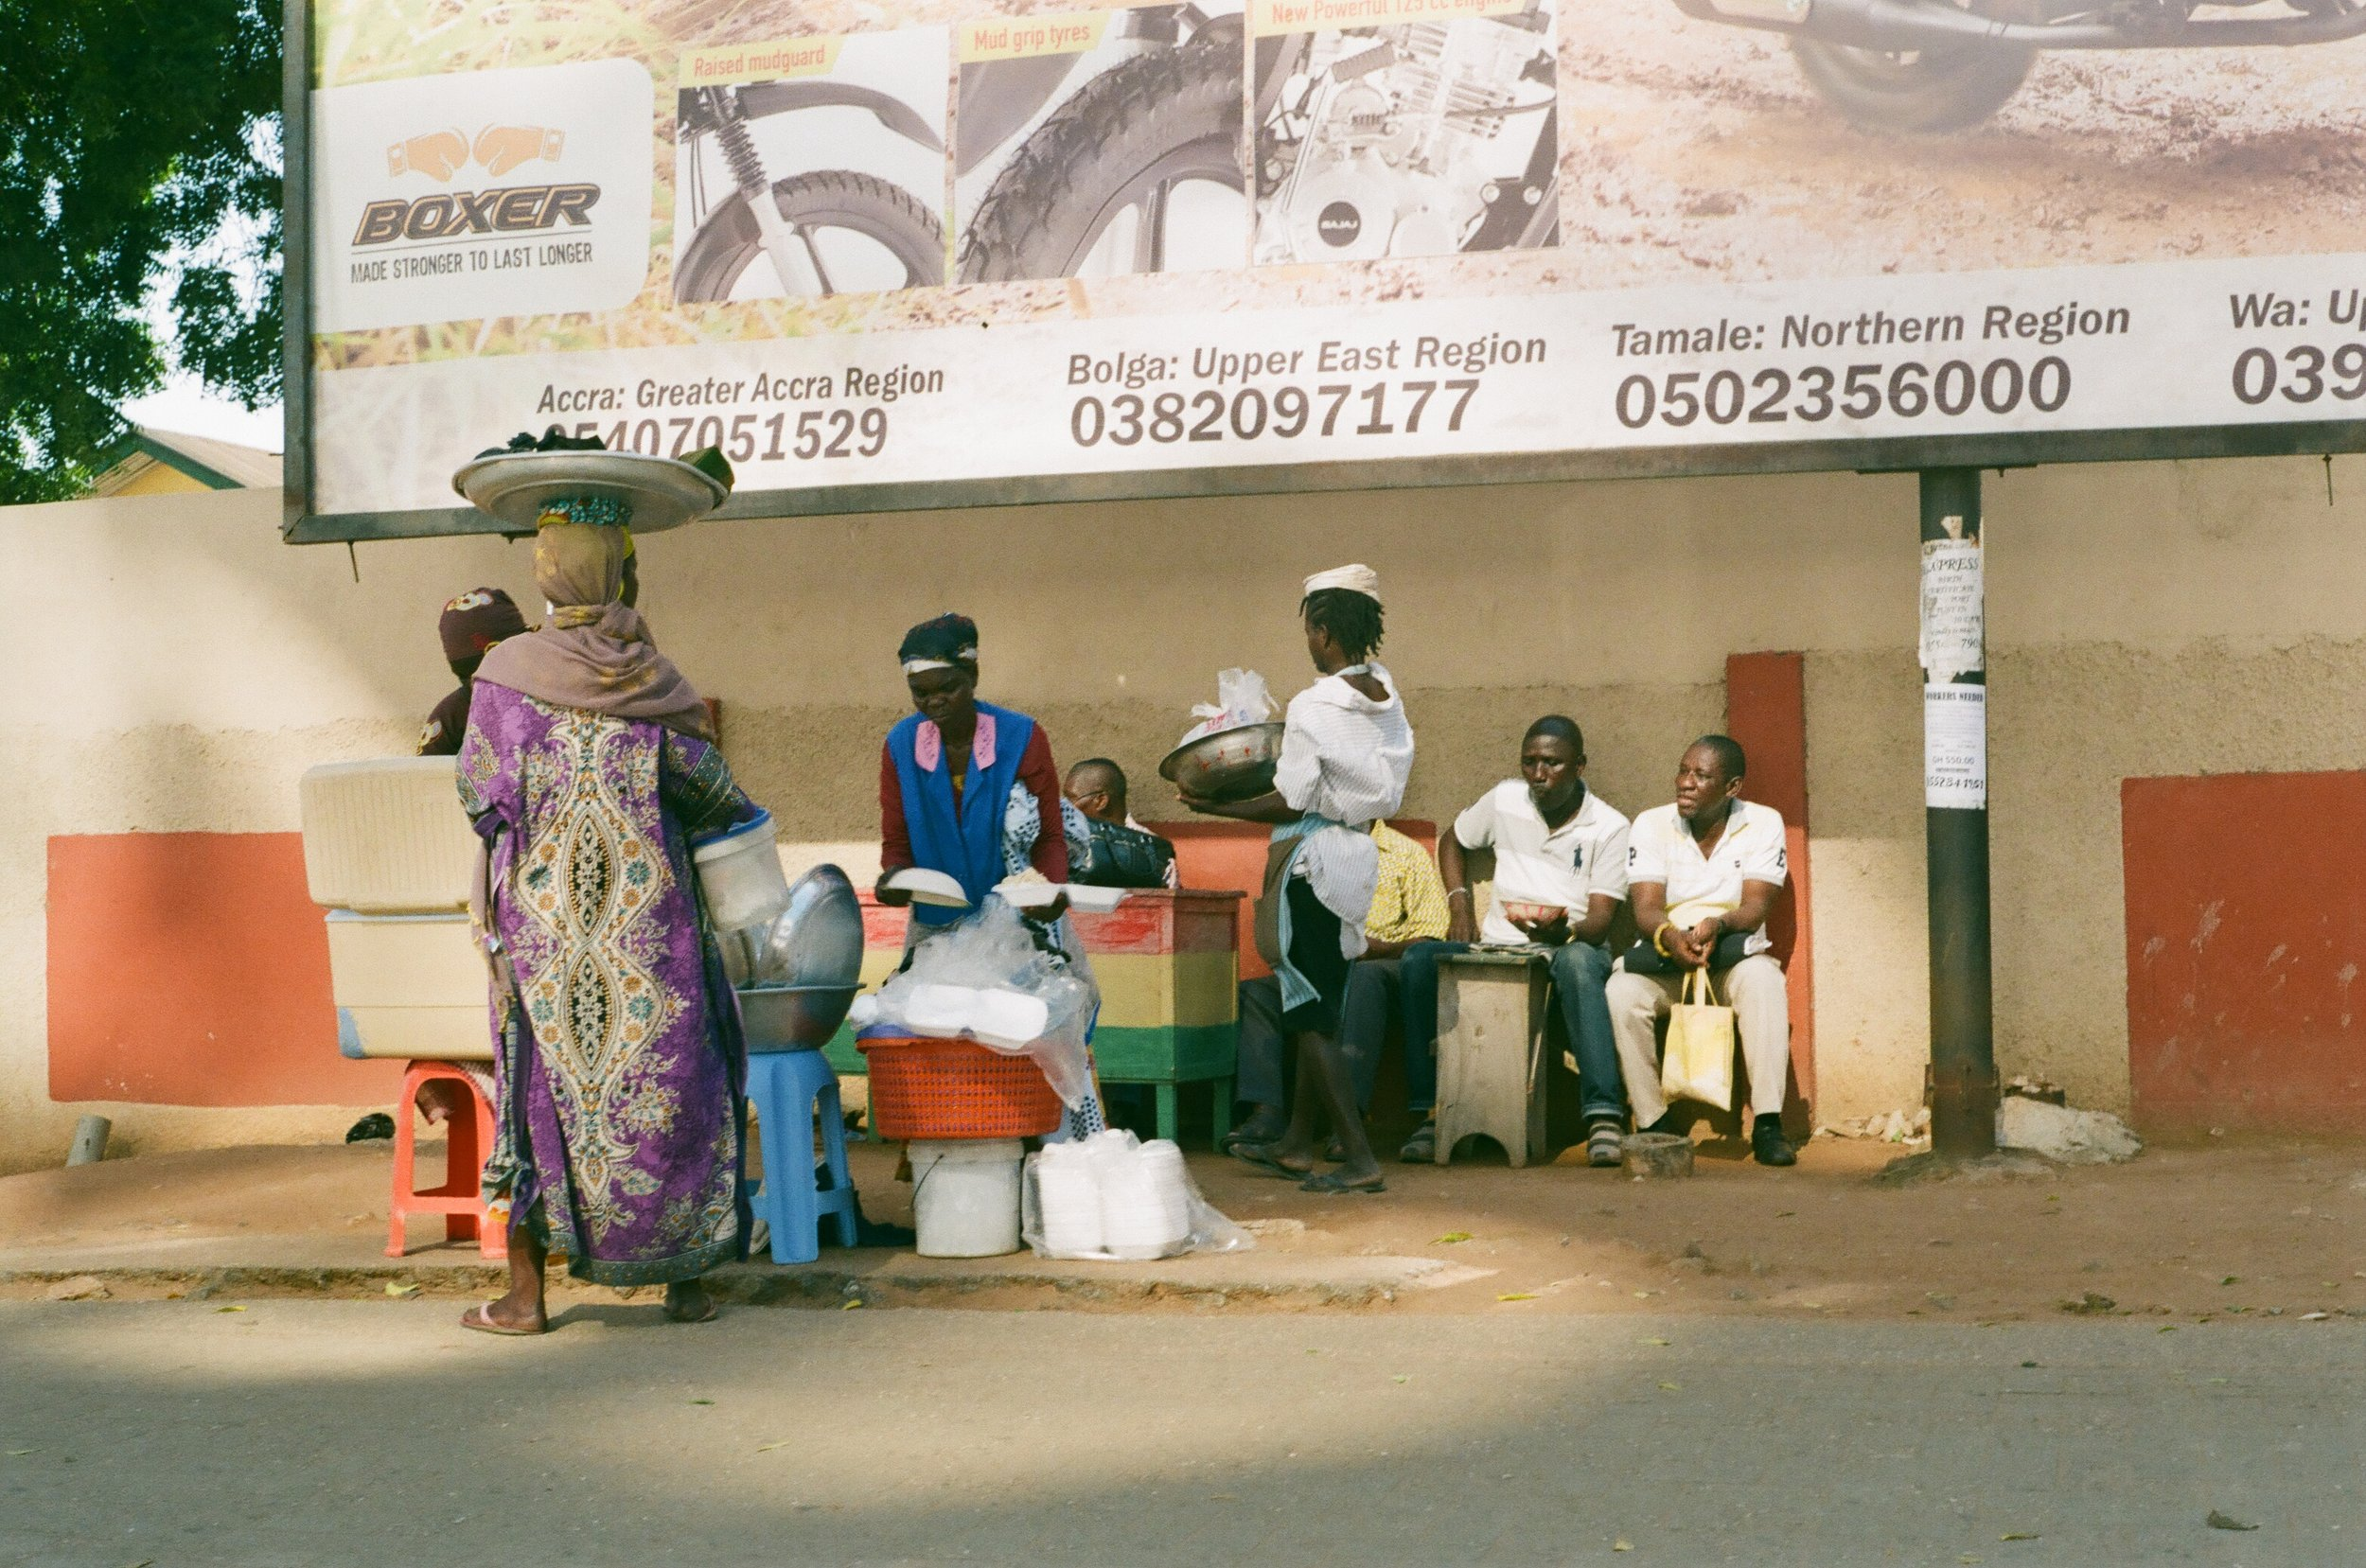 Taken from inside the taxi, this image shows a typical street scene in Accra of food being served and eaten roadside.